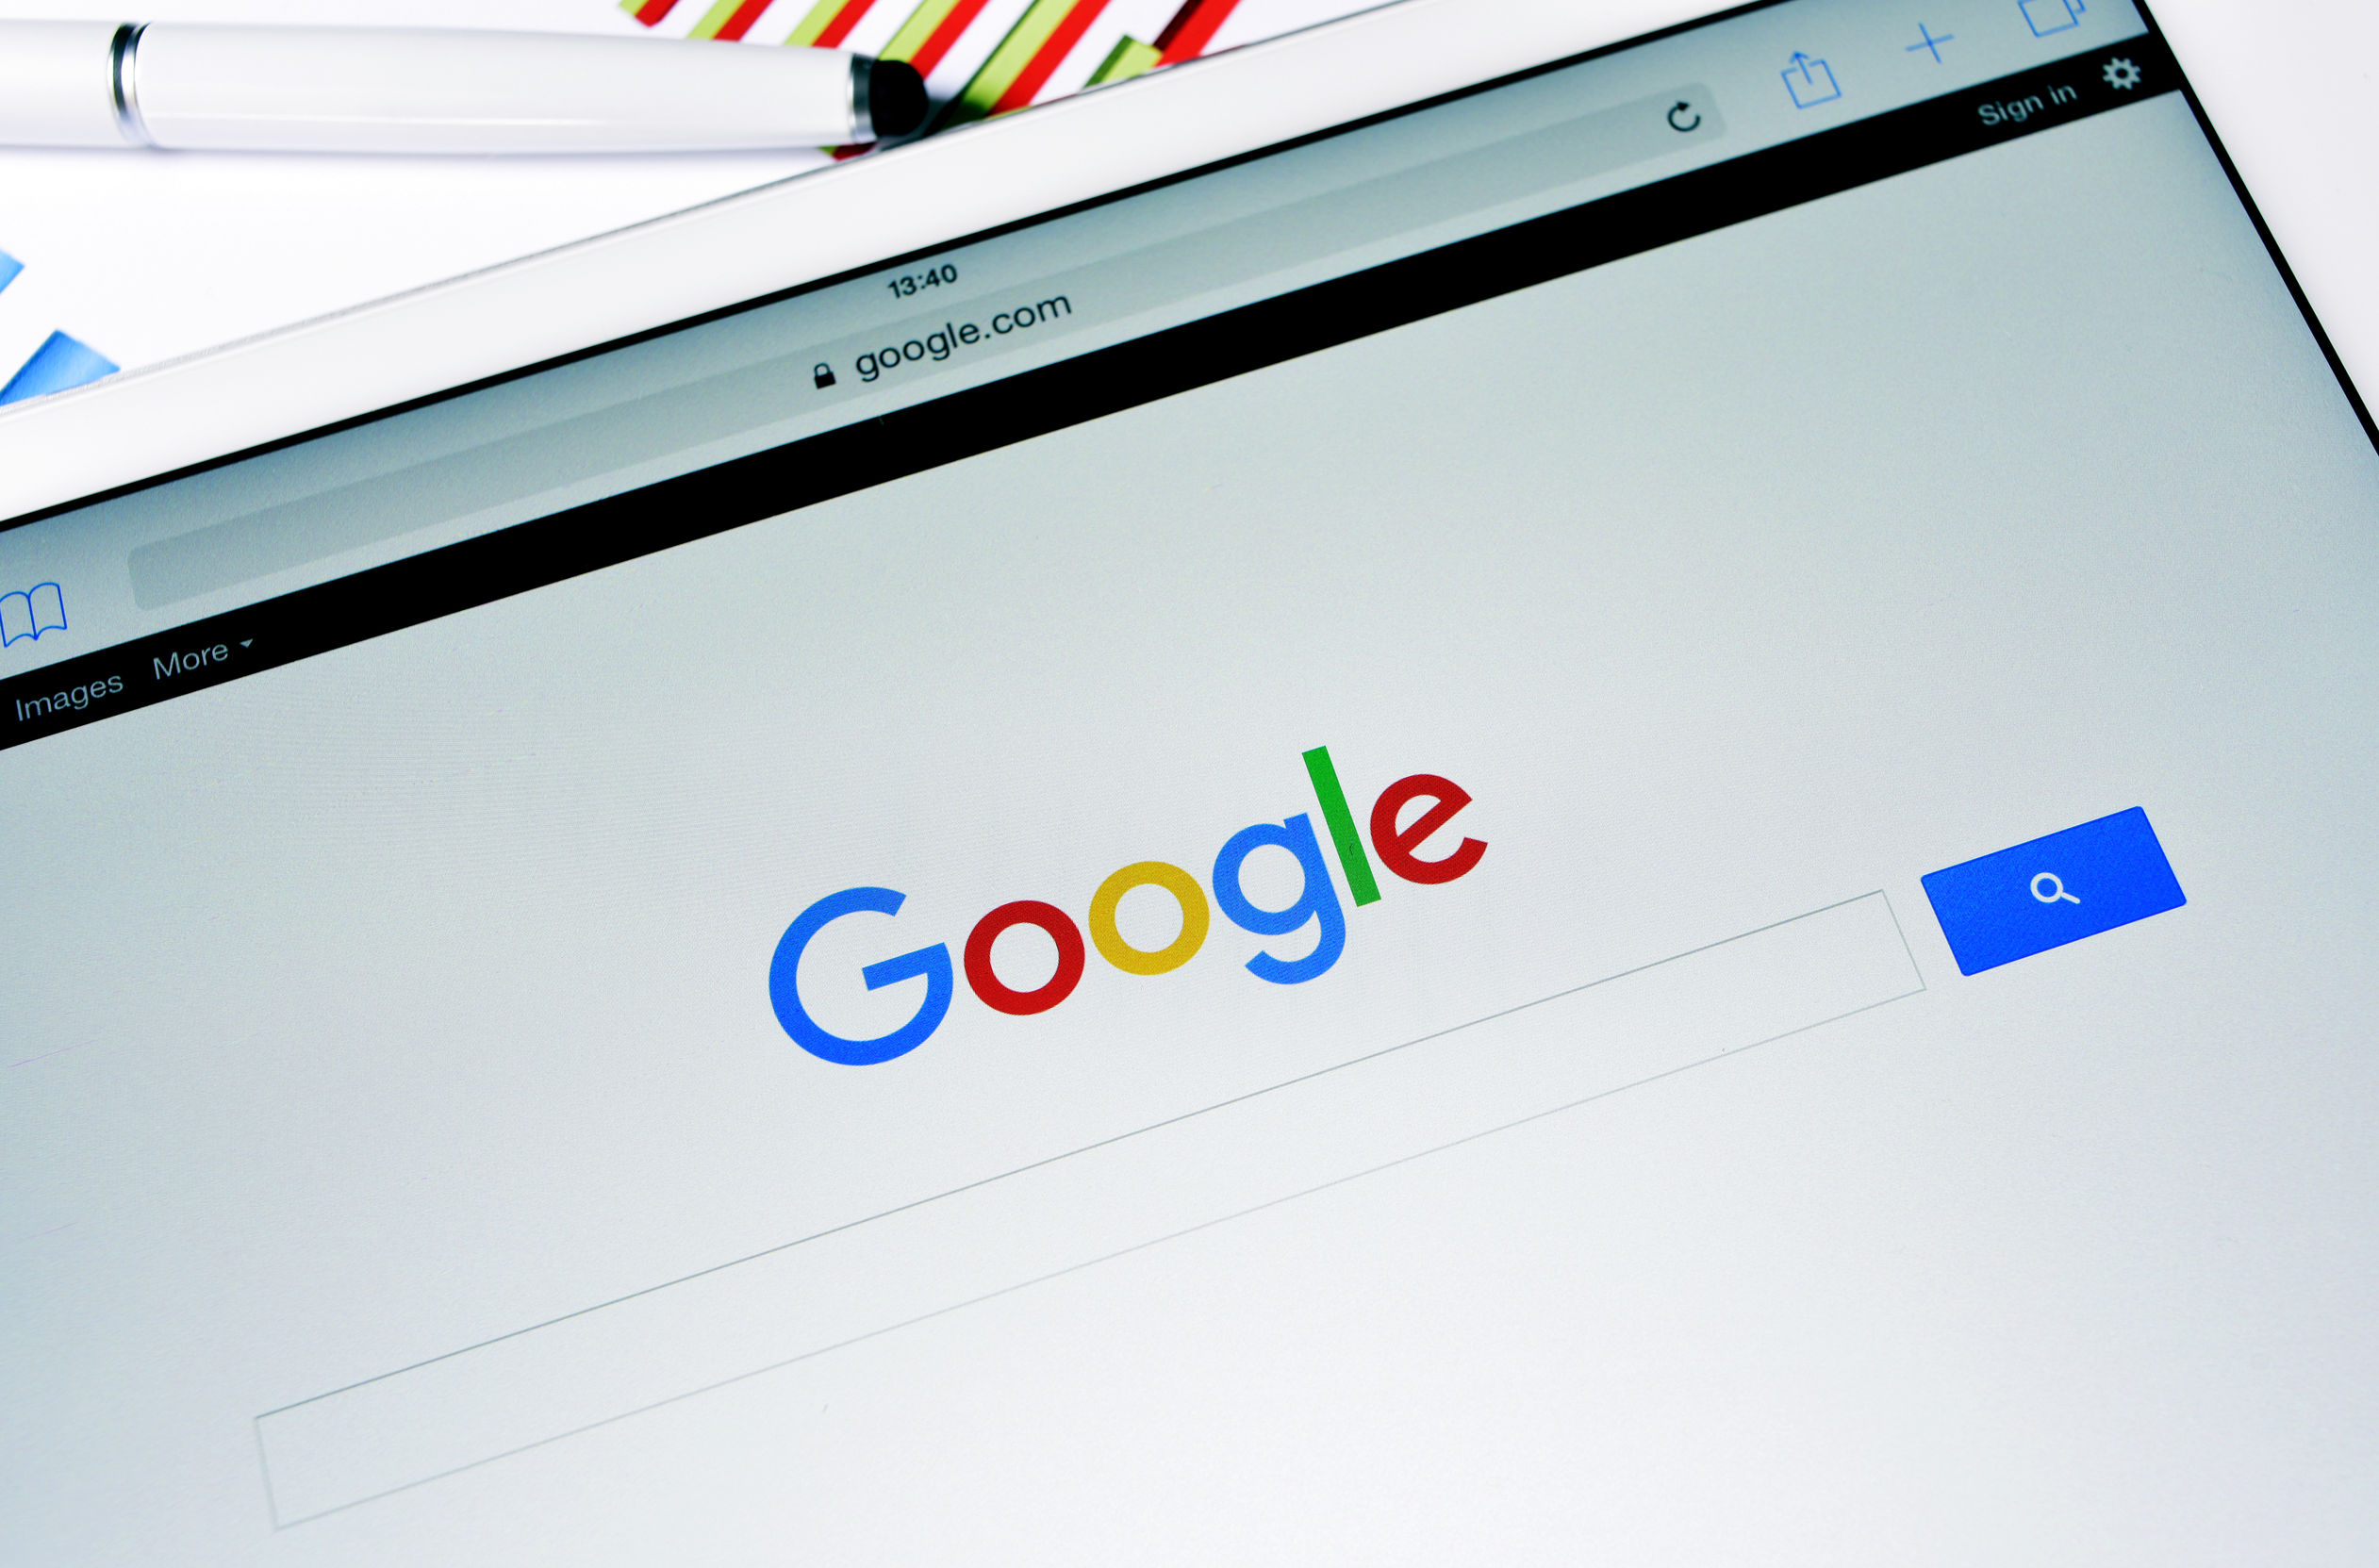 How Can You Rank Higher on Google?